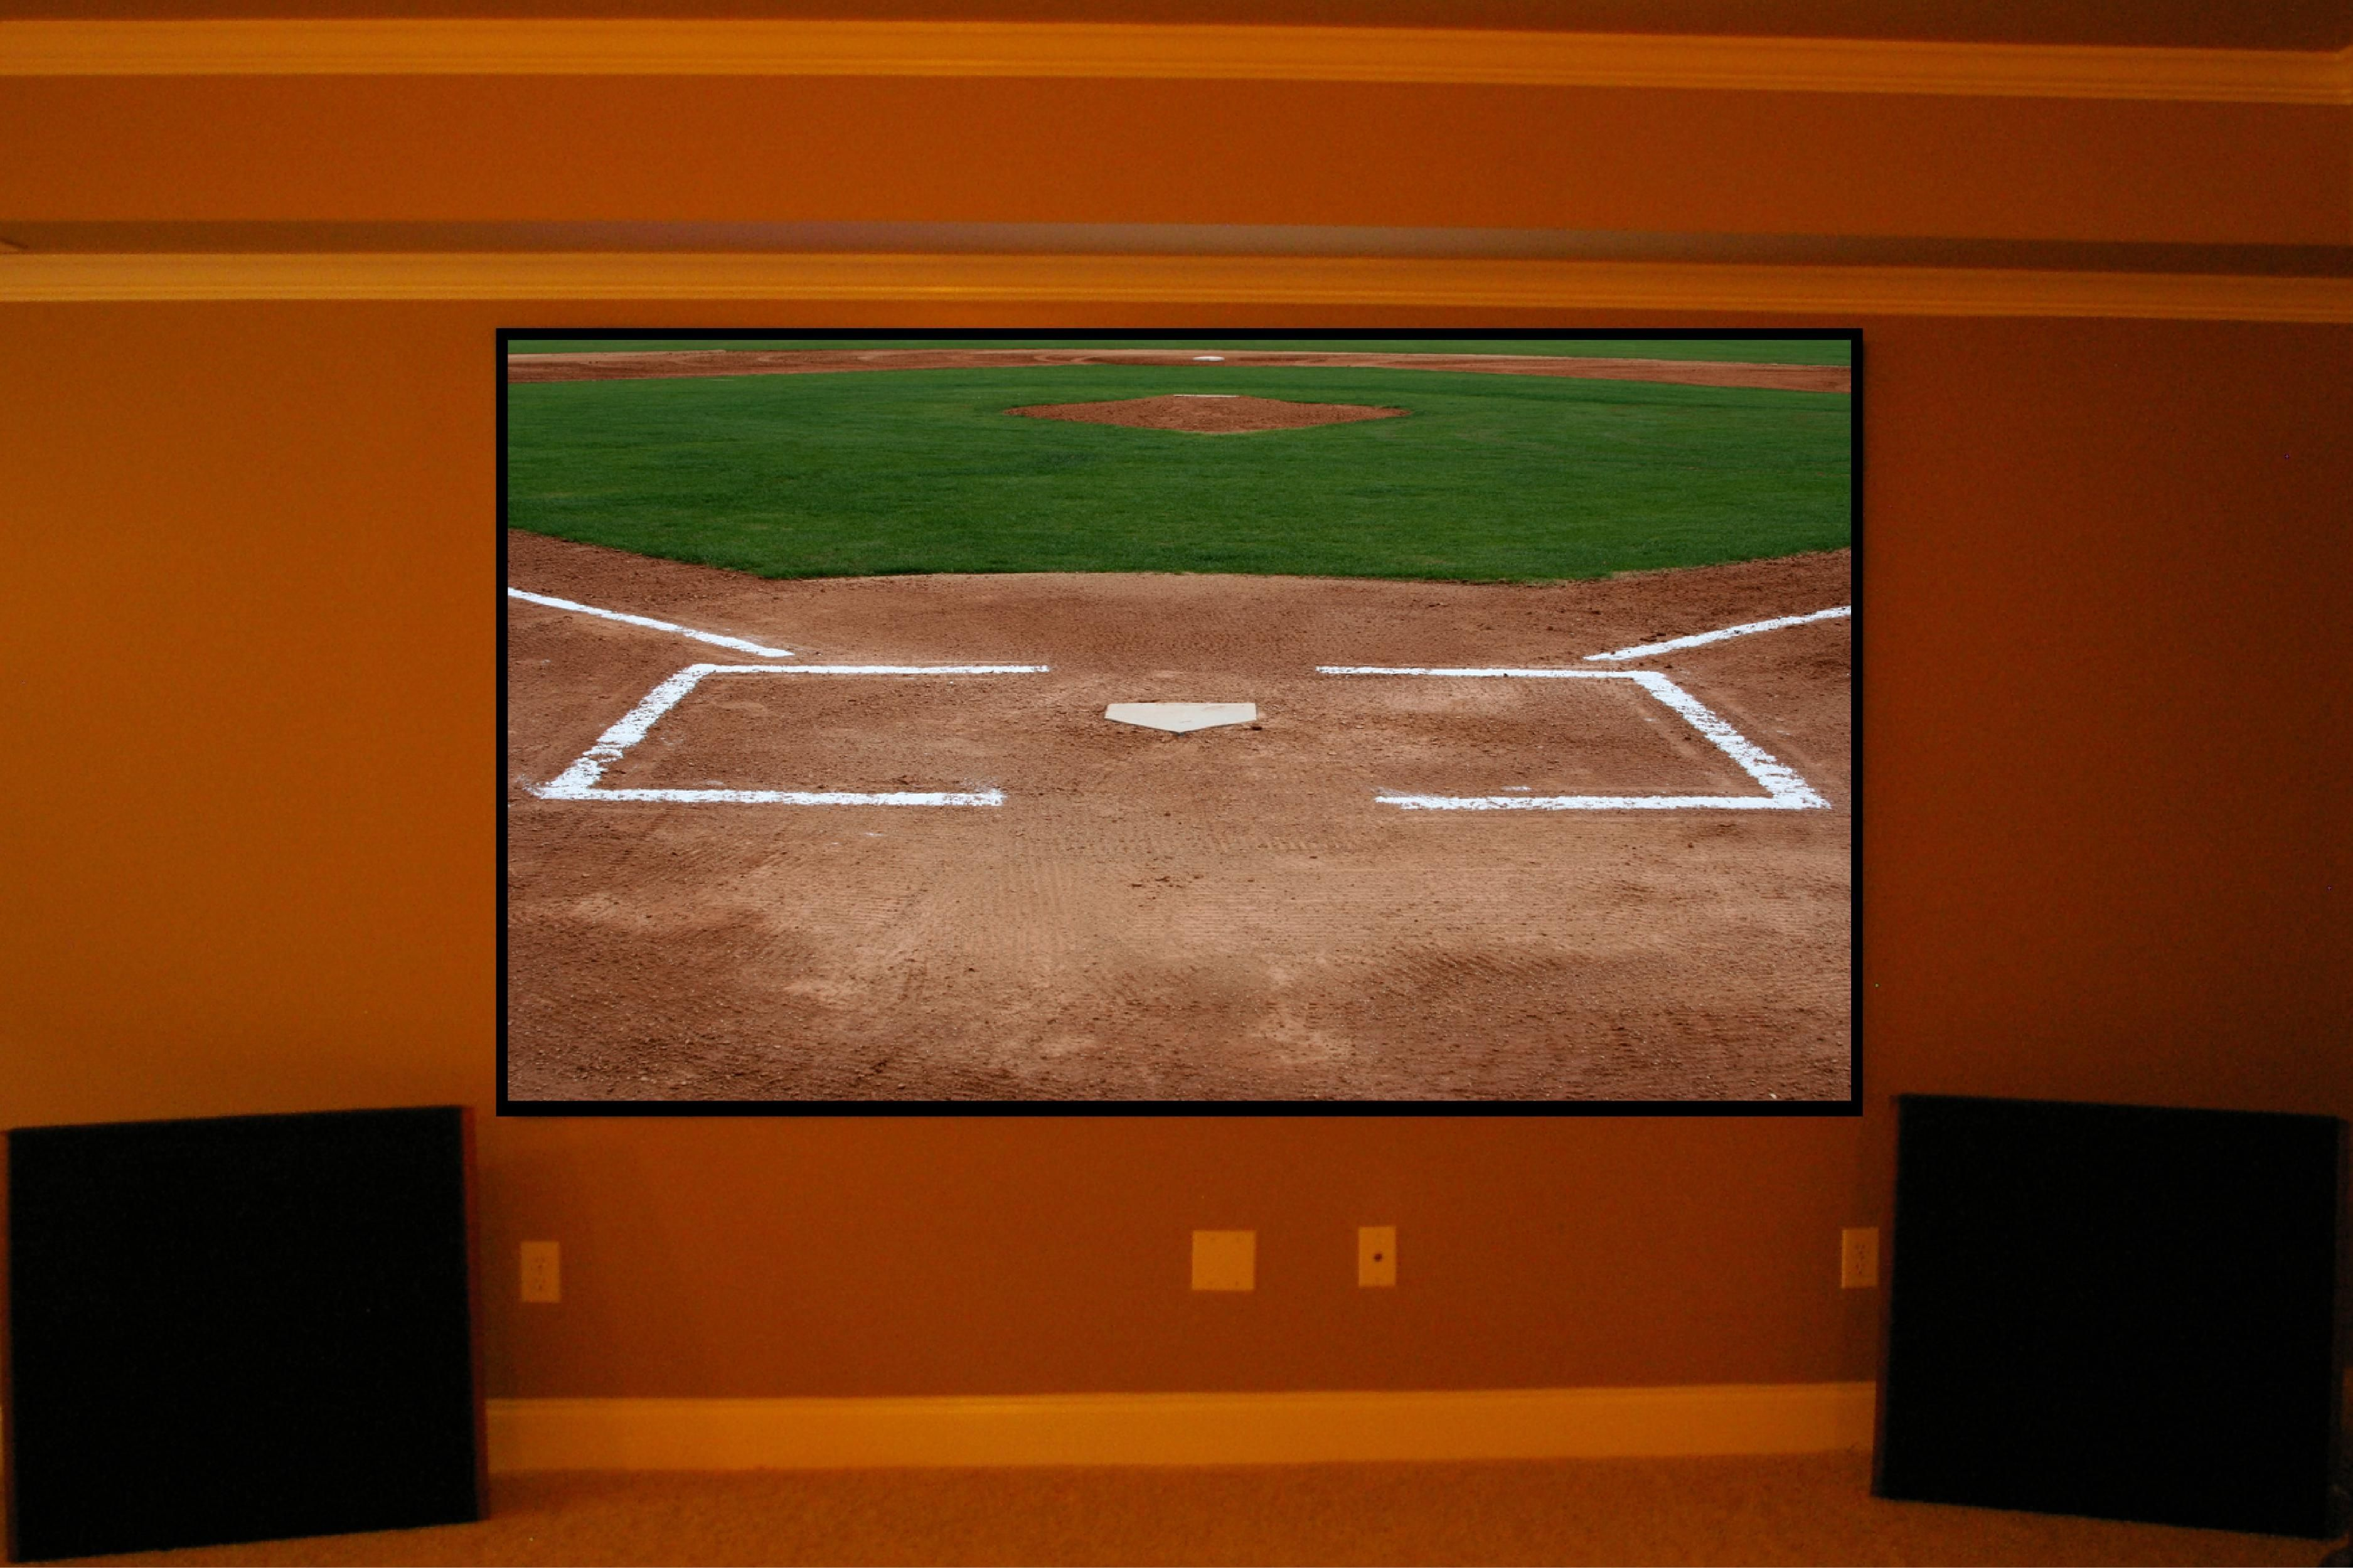 Custom Home Theater Installations By Cobb Audio Visual, Llc Marietta,